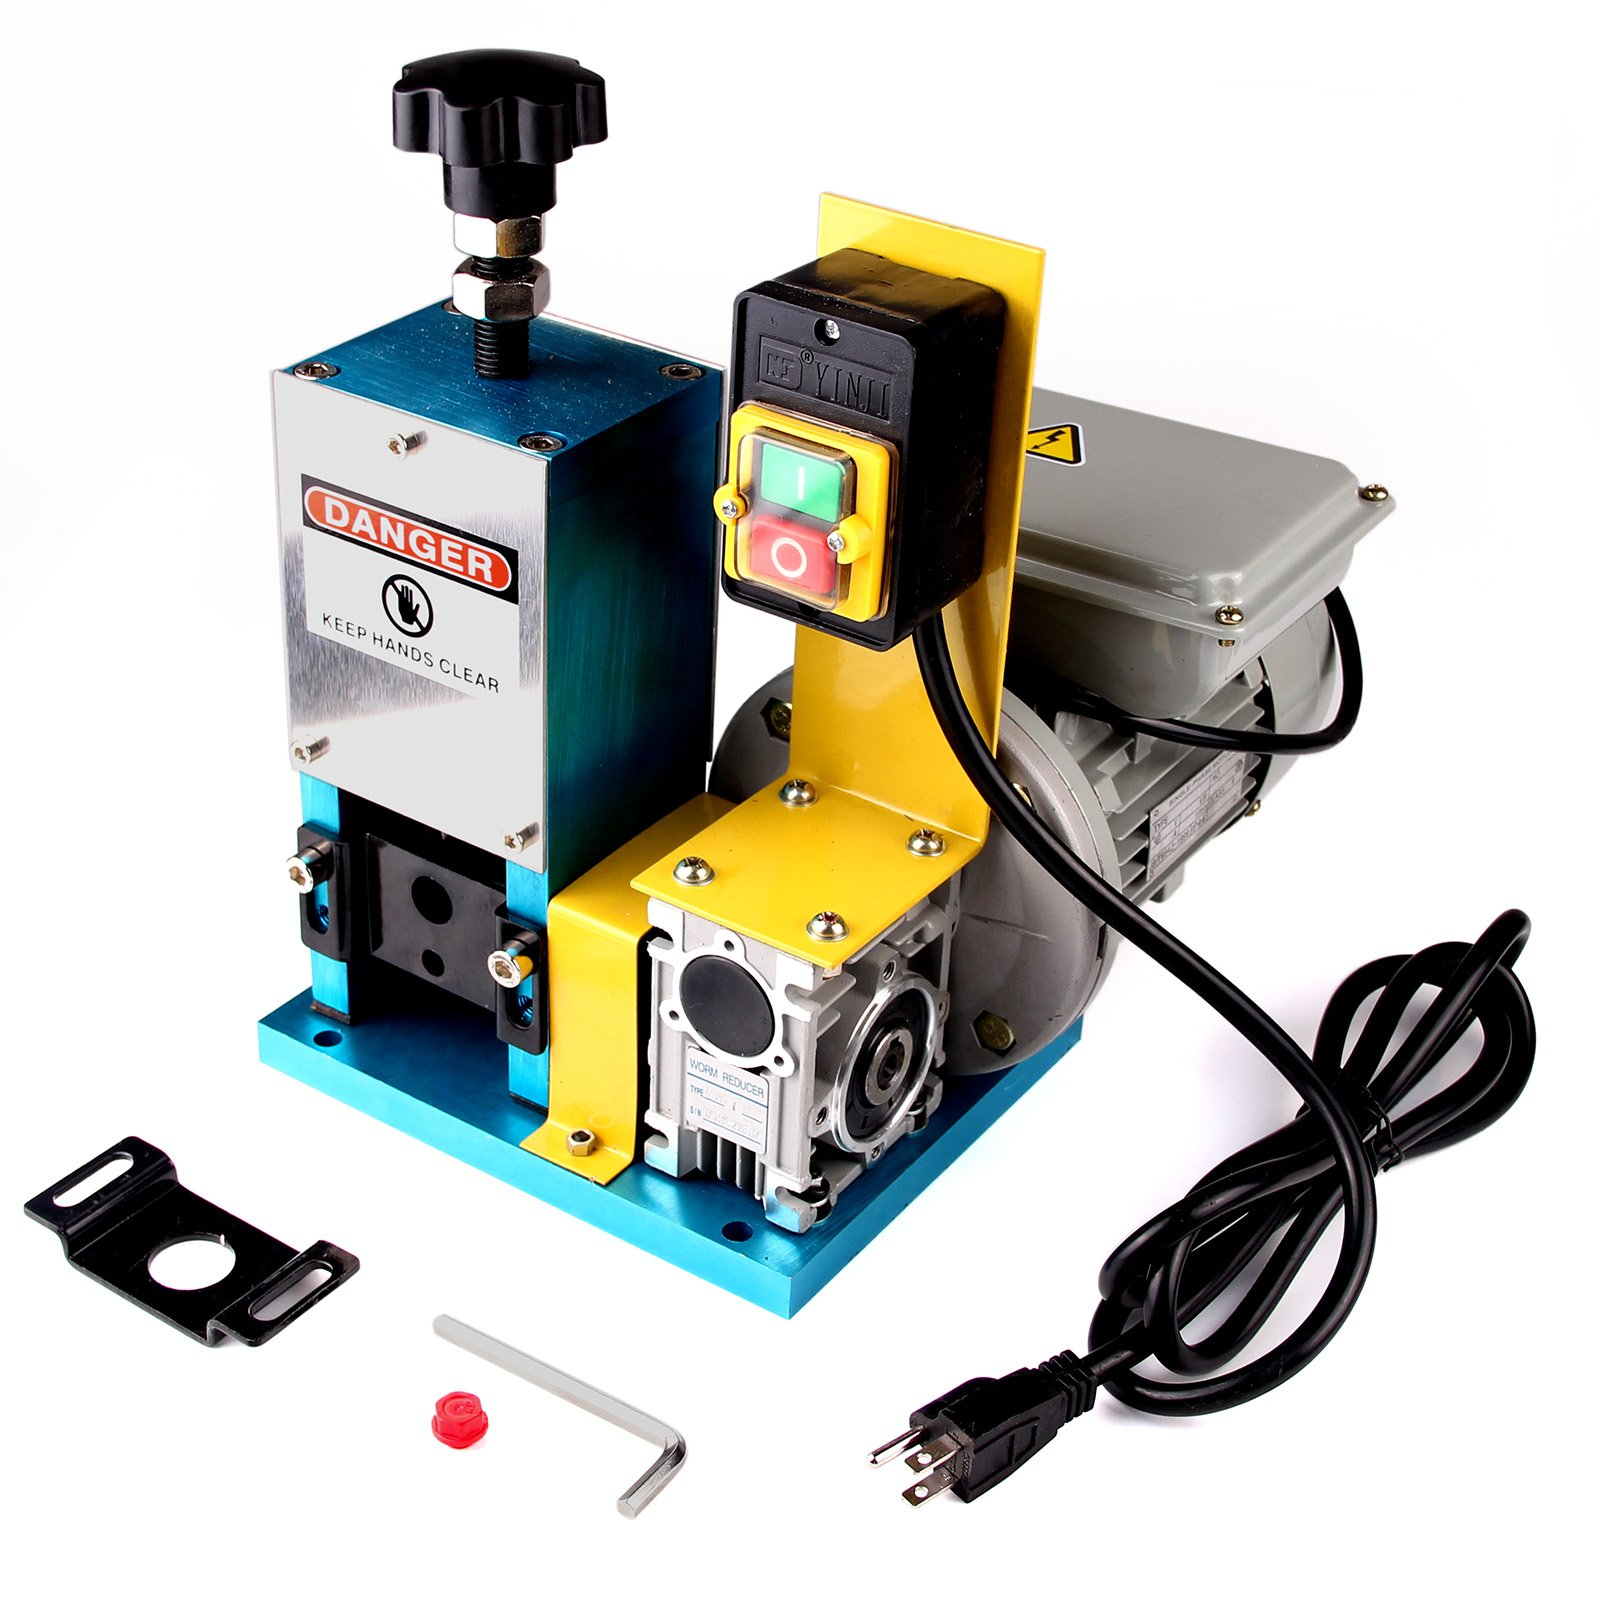 PENSON & CO. Automatic Motorized Electric Wire Stripping Machine for Scrap Copper Wire Cable Stripping Blades